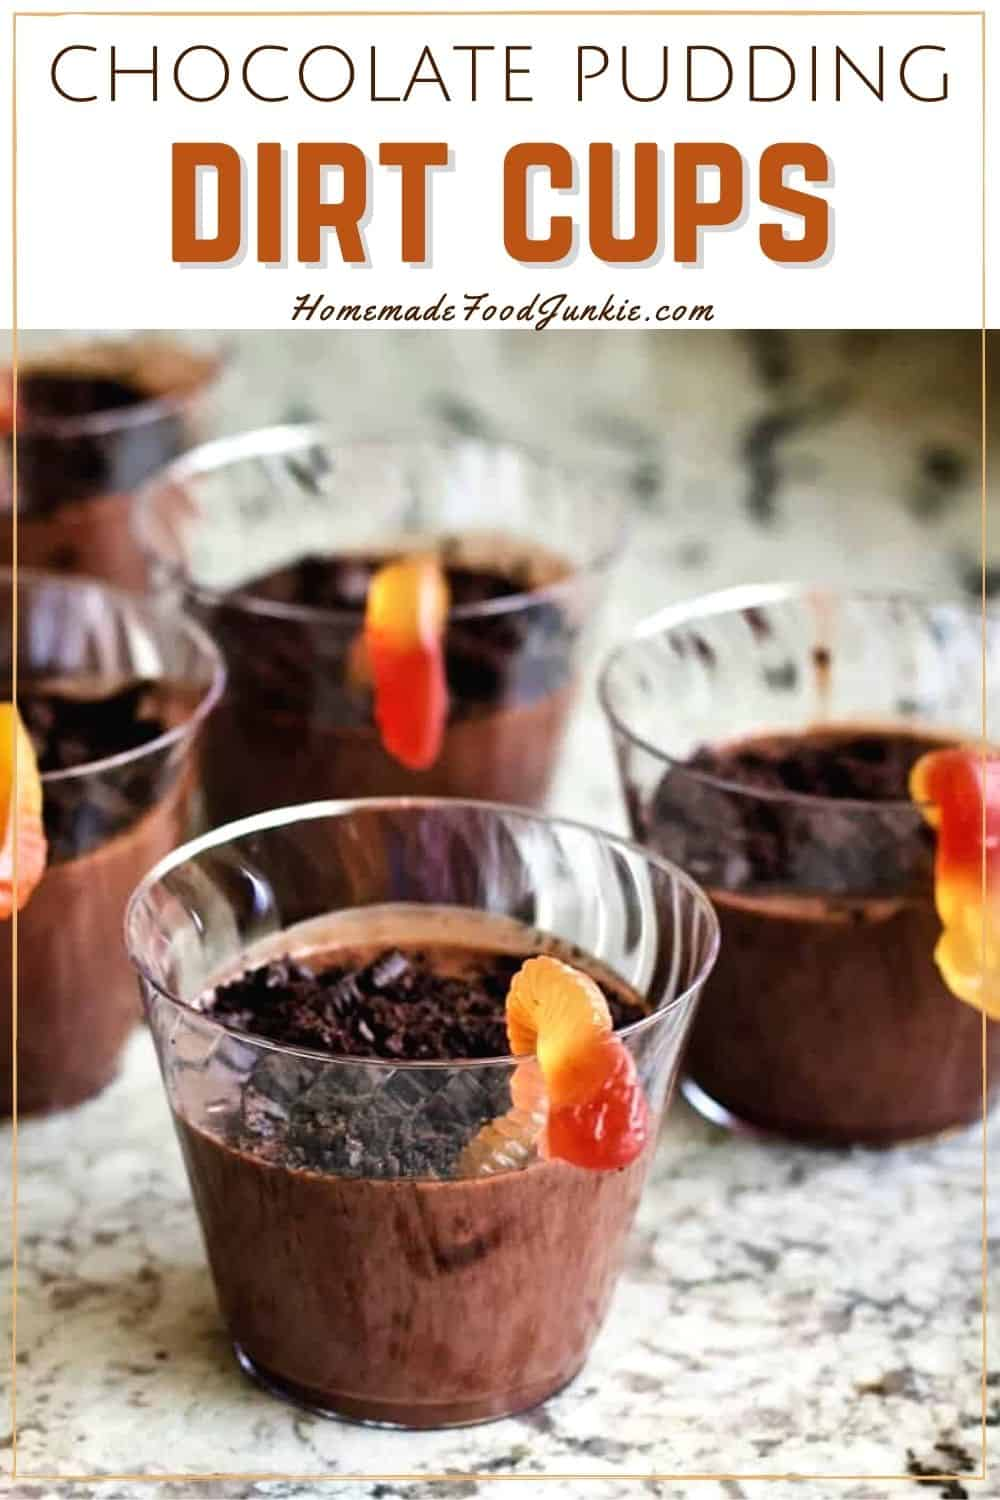 Chocolate pudding dirt cups-pin image